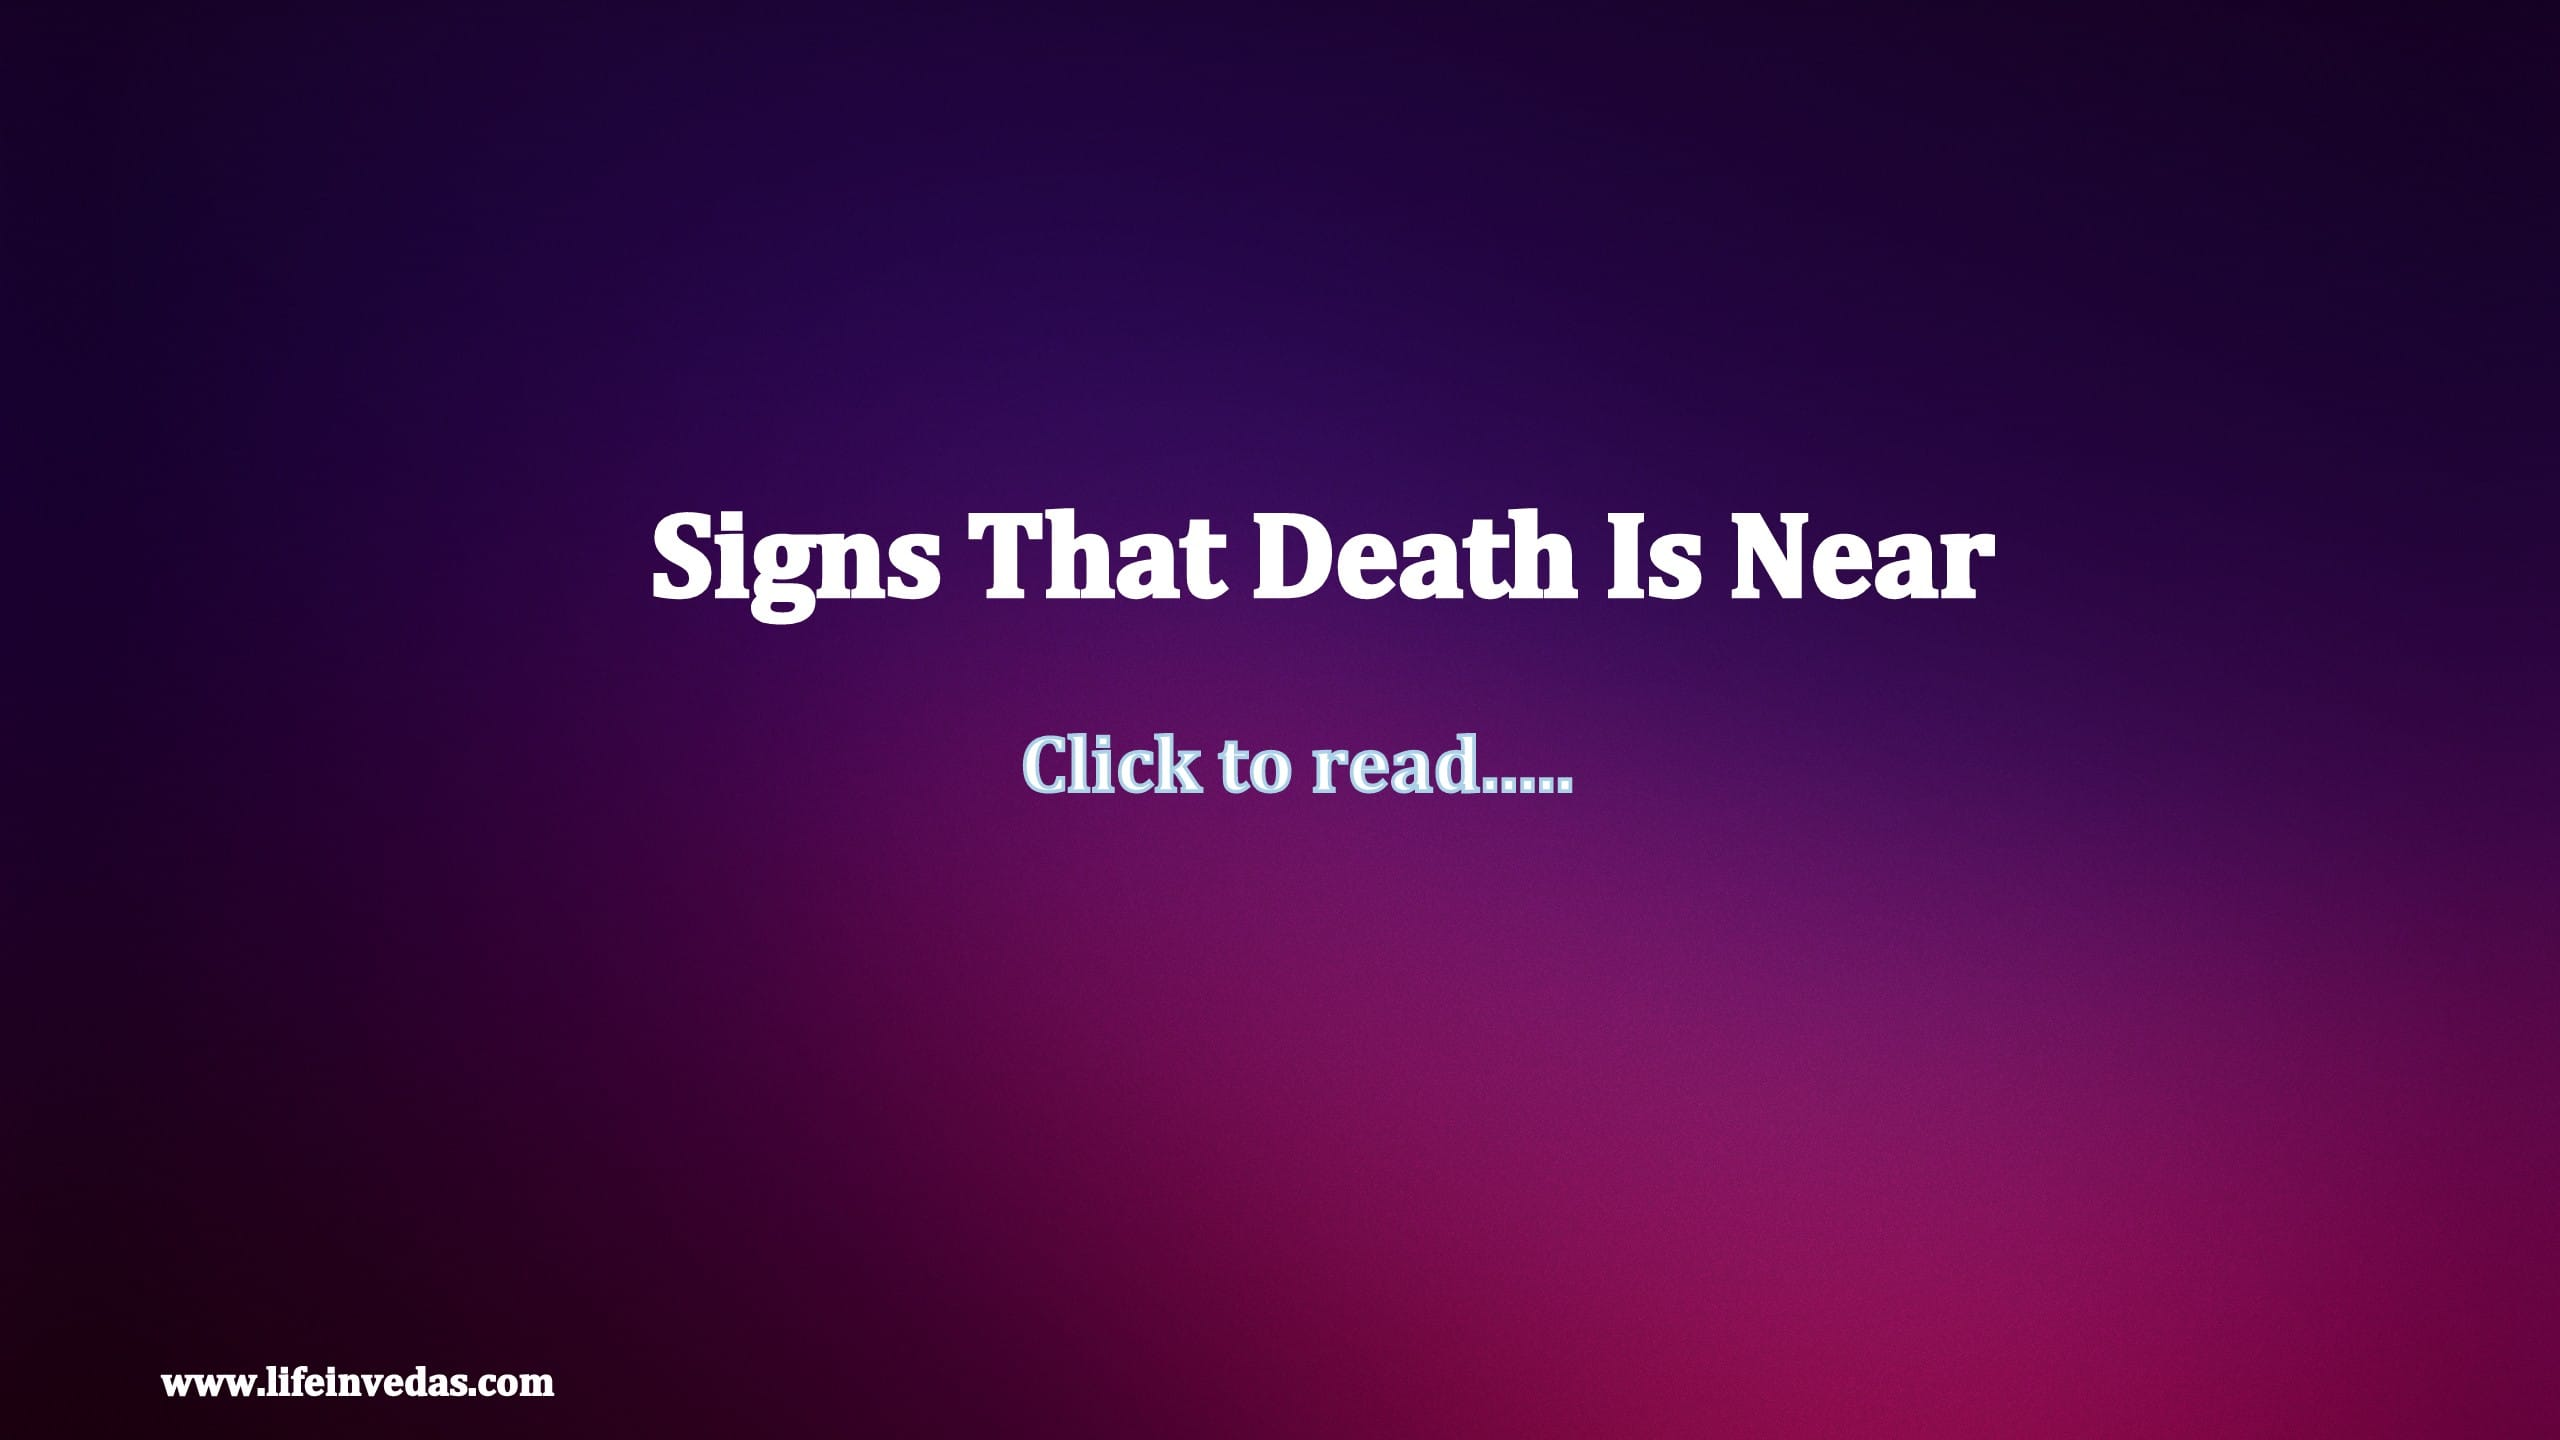 Am i dying - 11 Signs Death is Near by Shivpuran - Life In Vedas